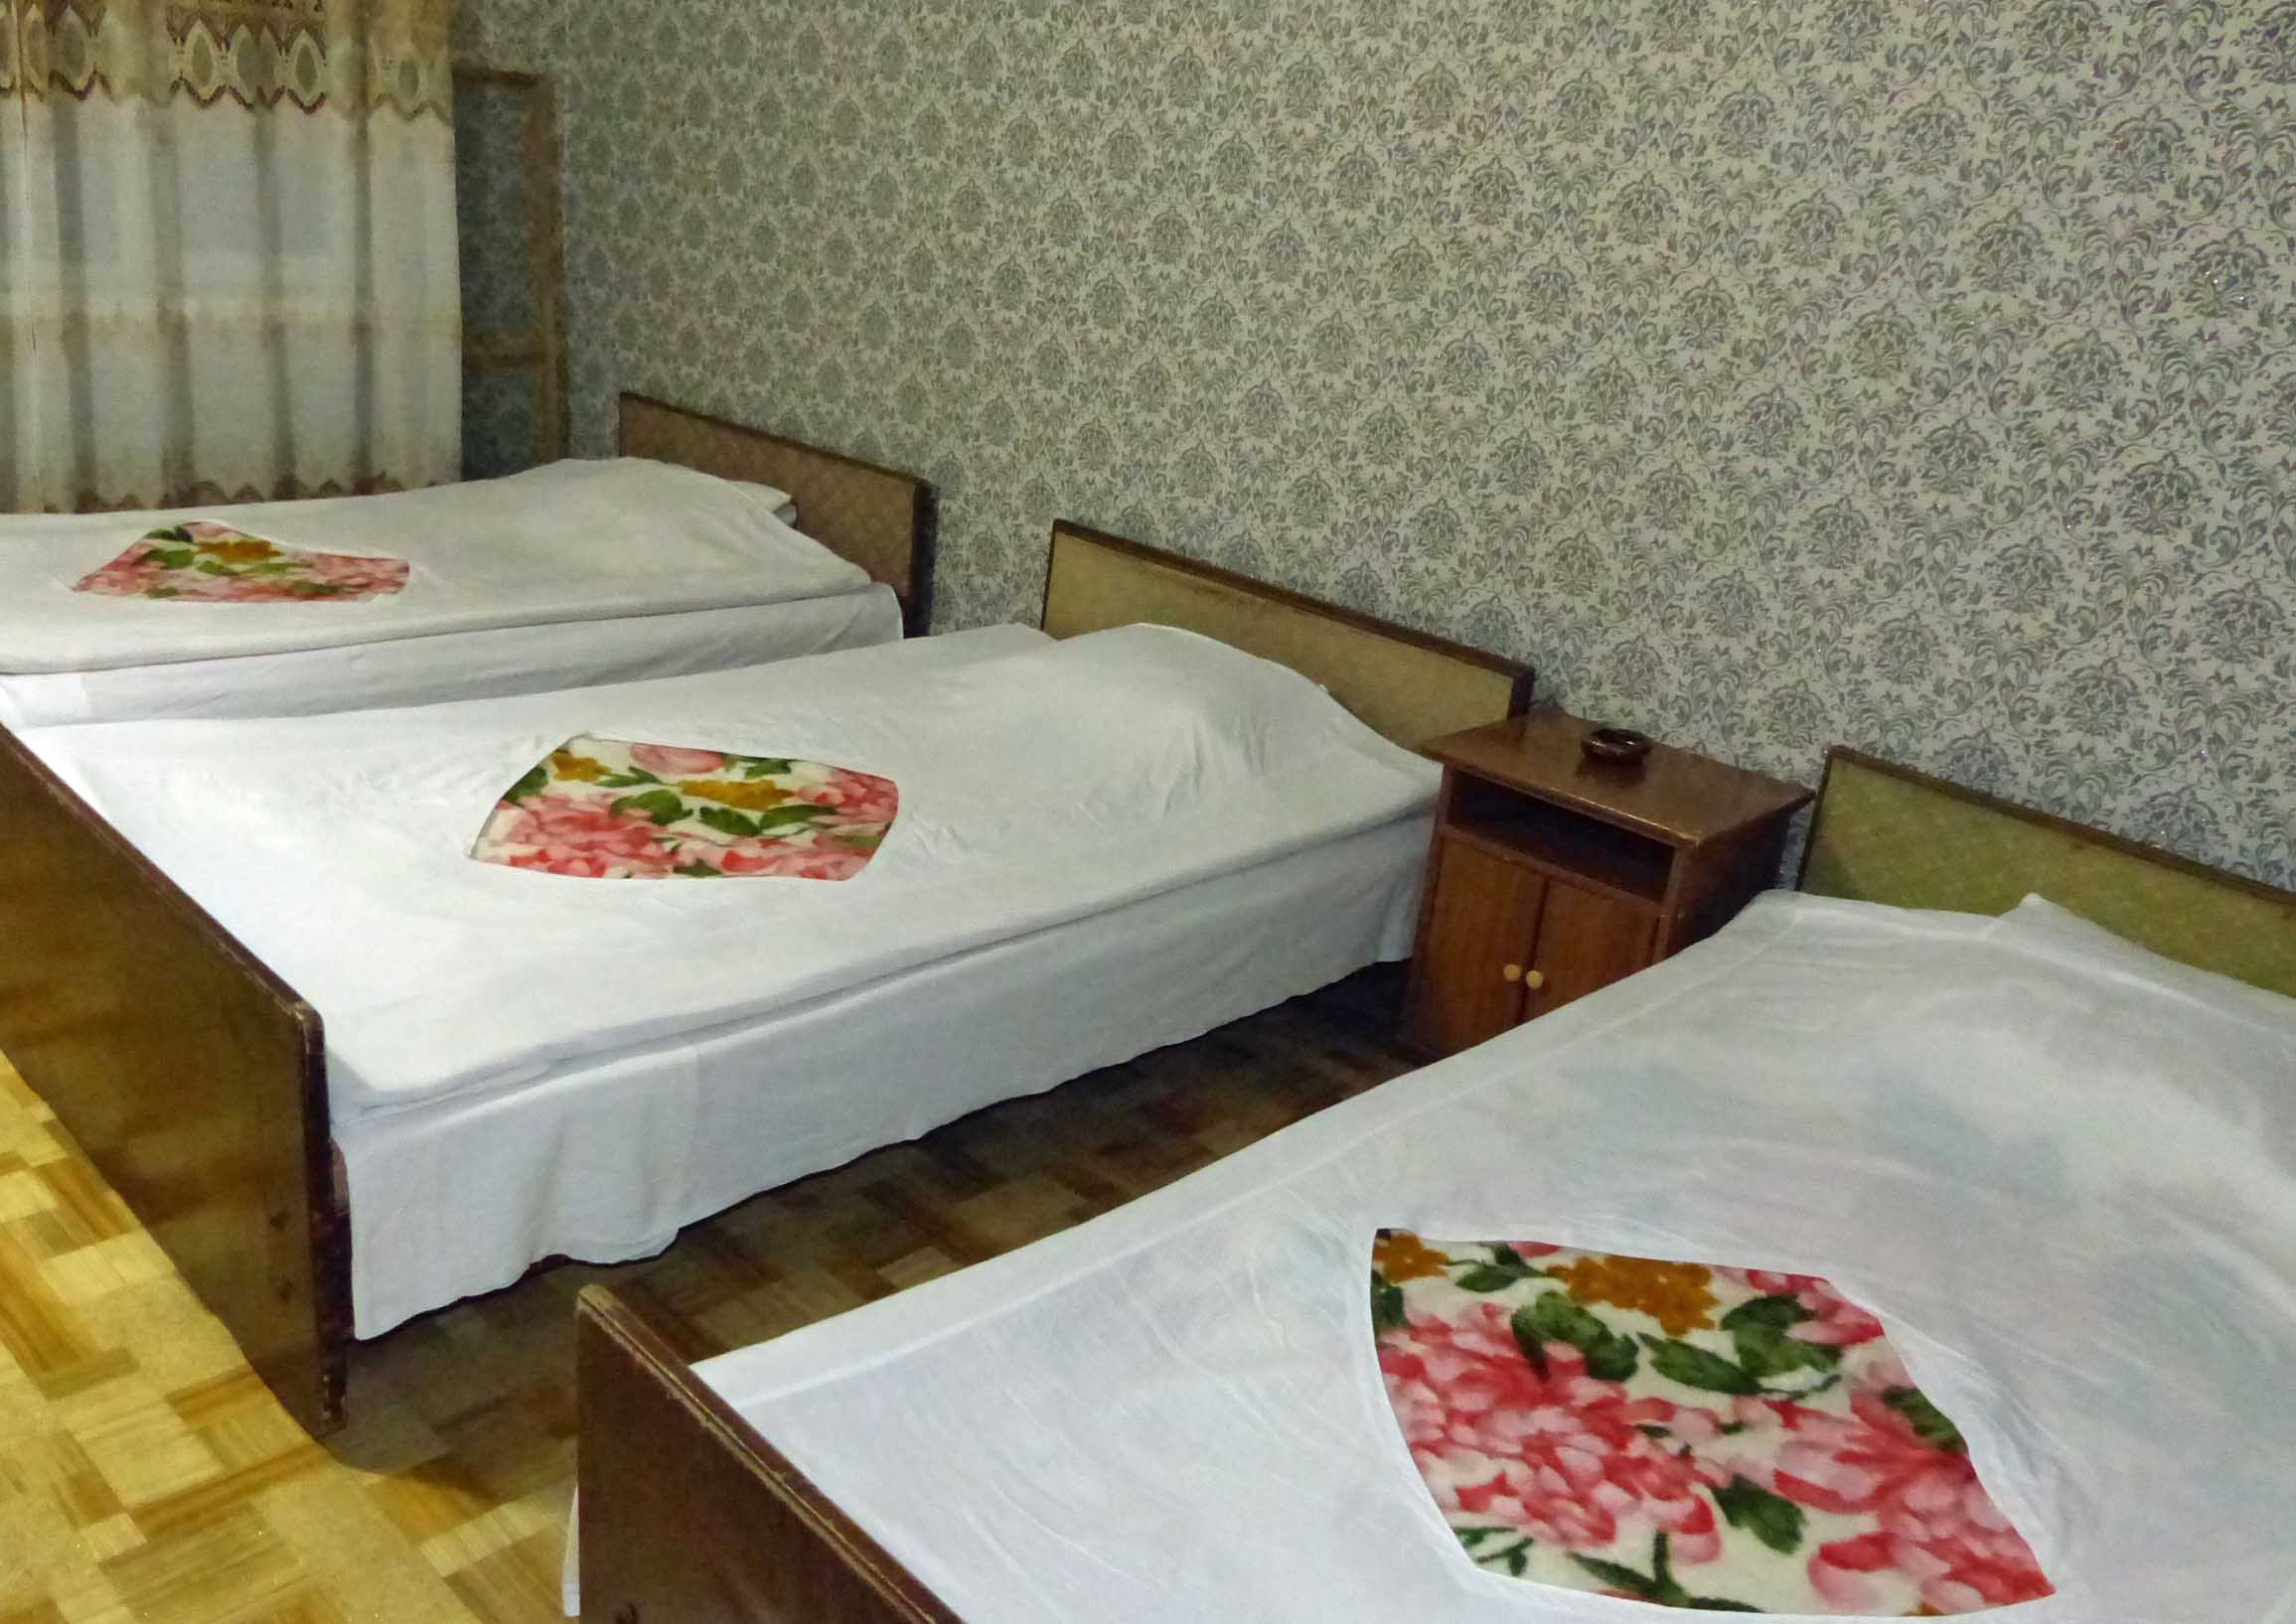 Three simple beds with floral spreads on lino floor